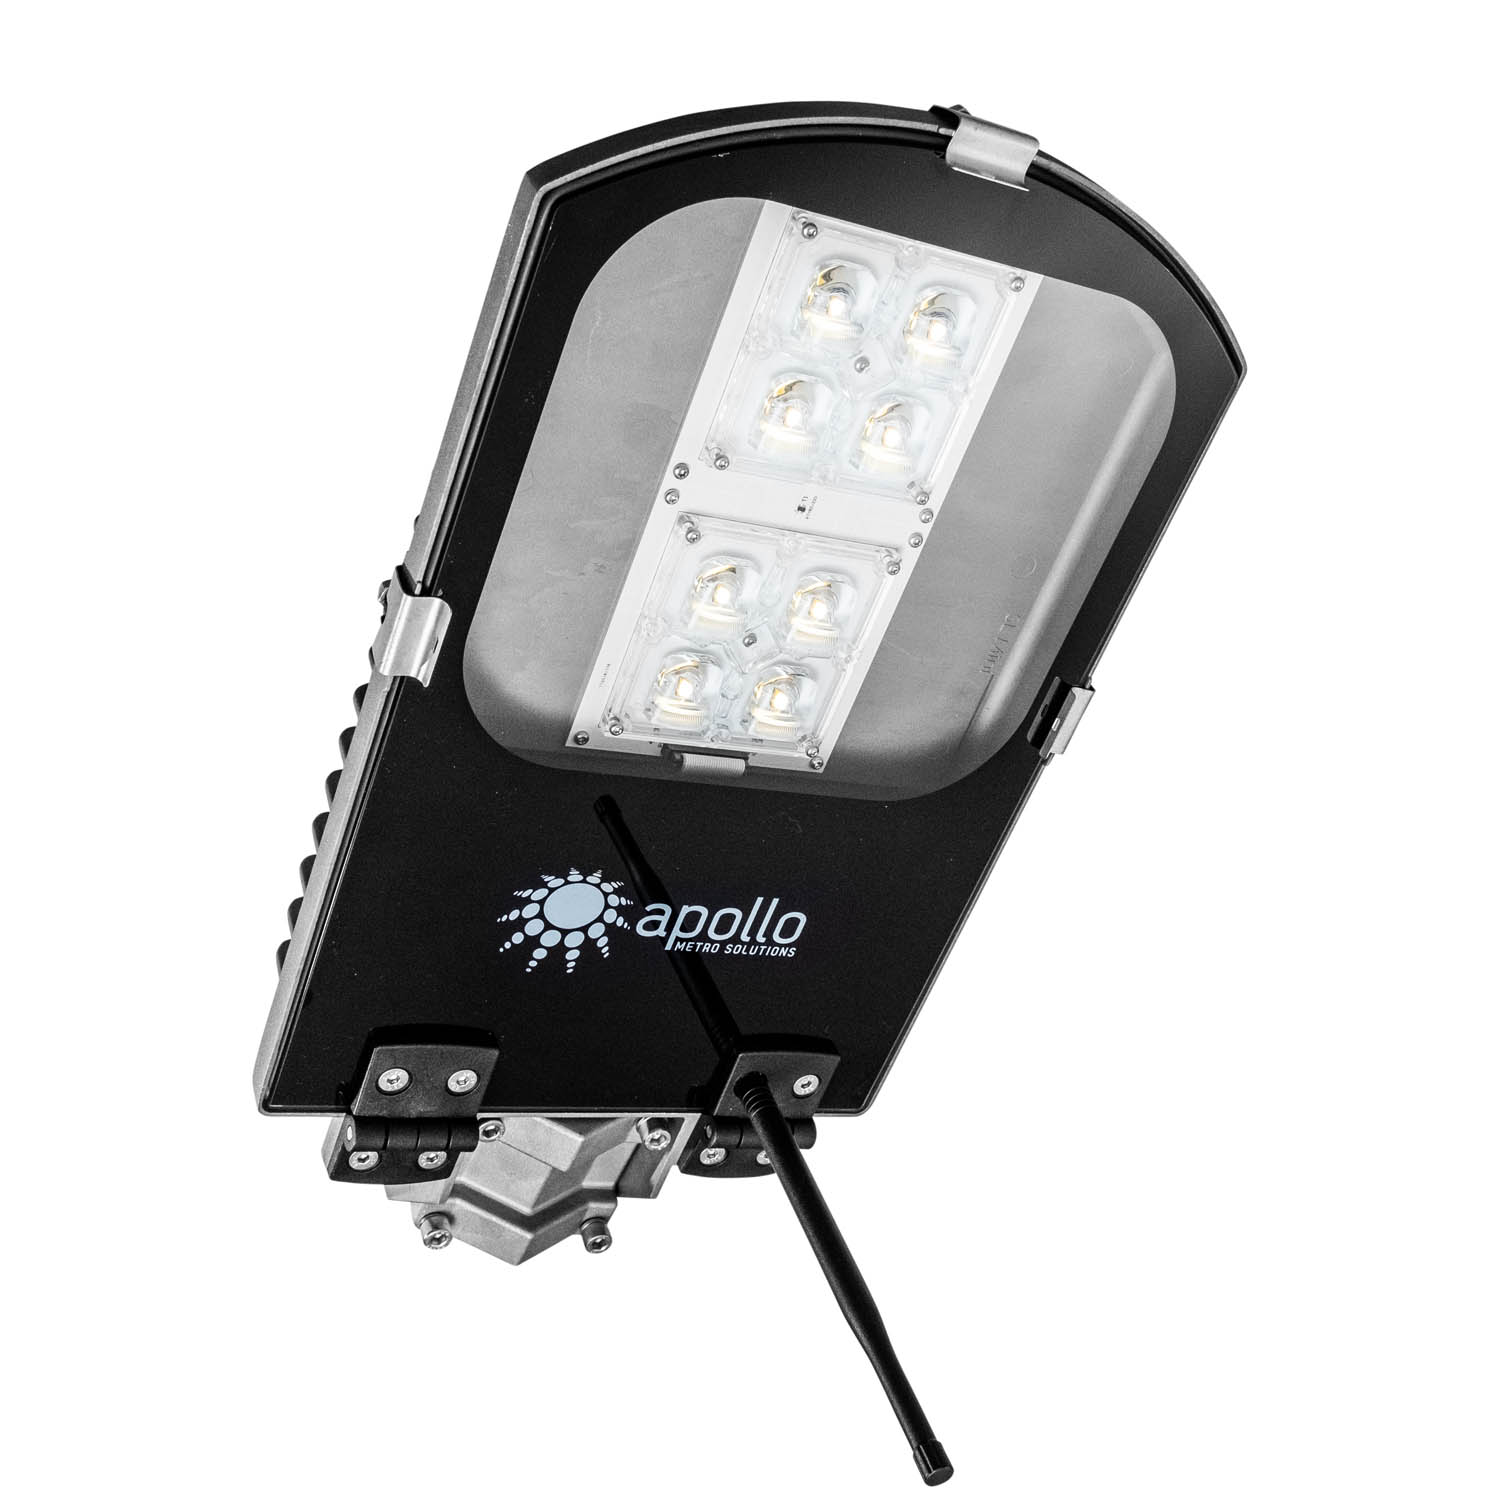 Apollo SL5 Mini LED Street Light